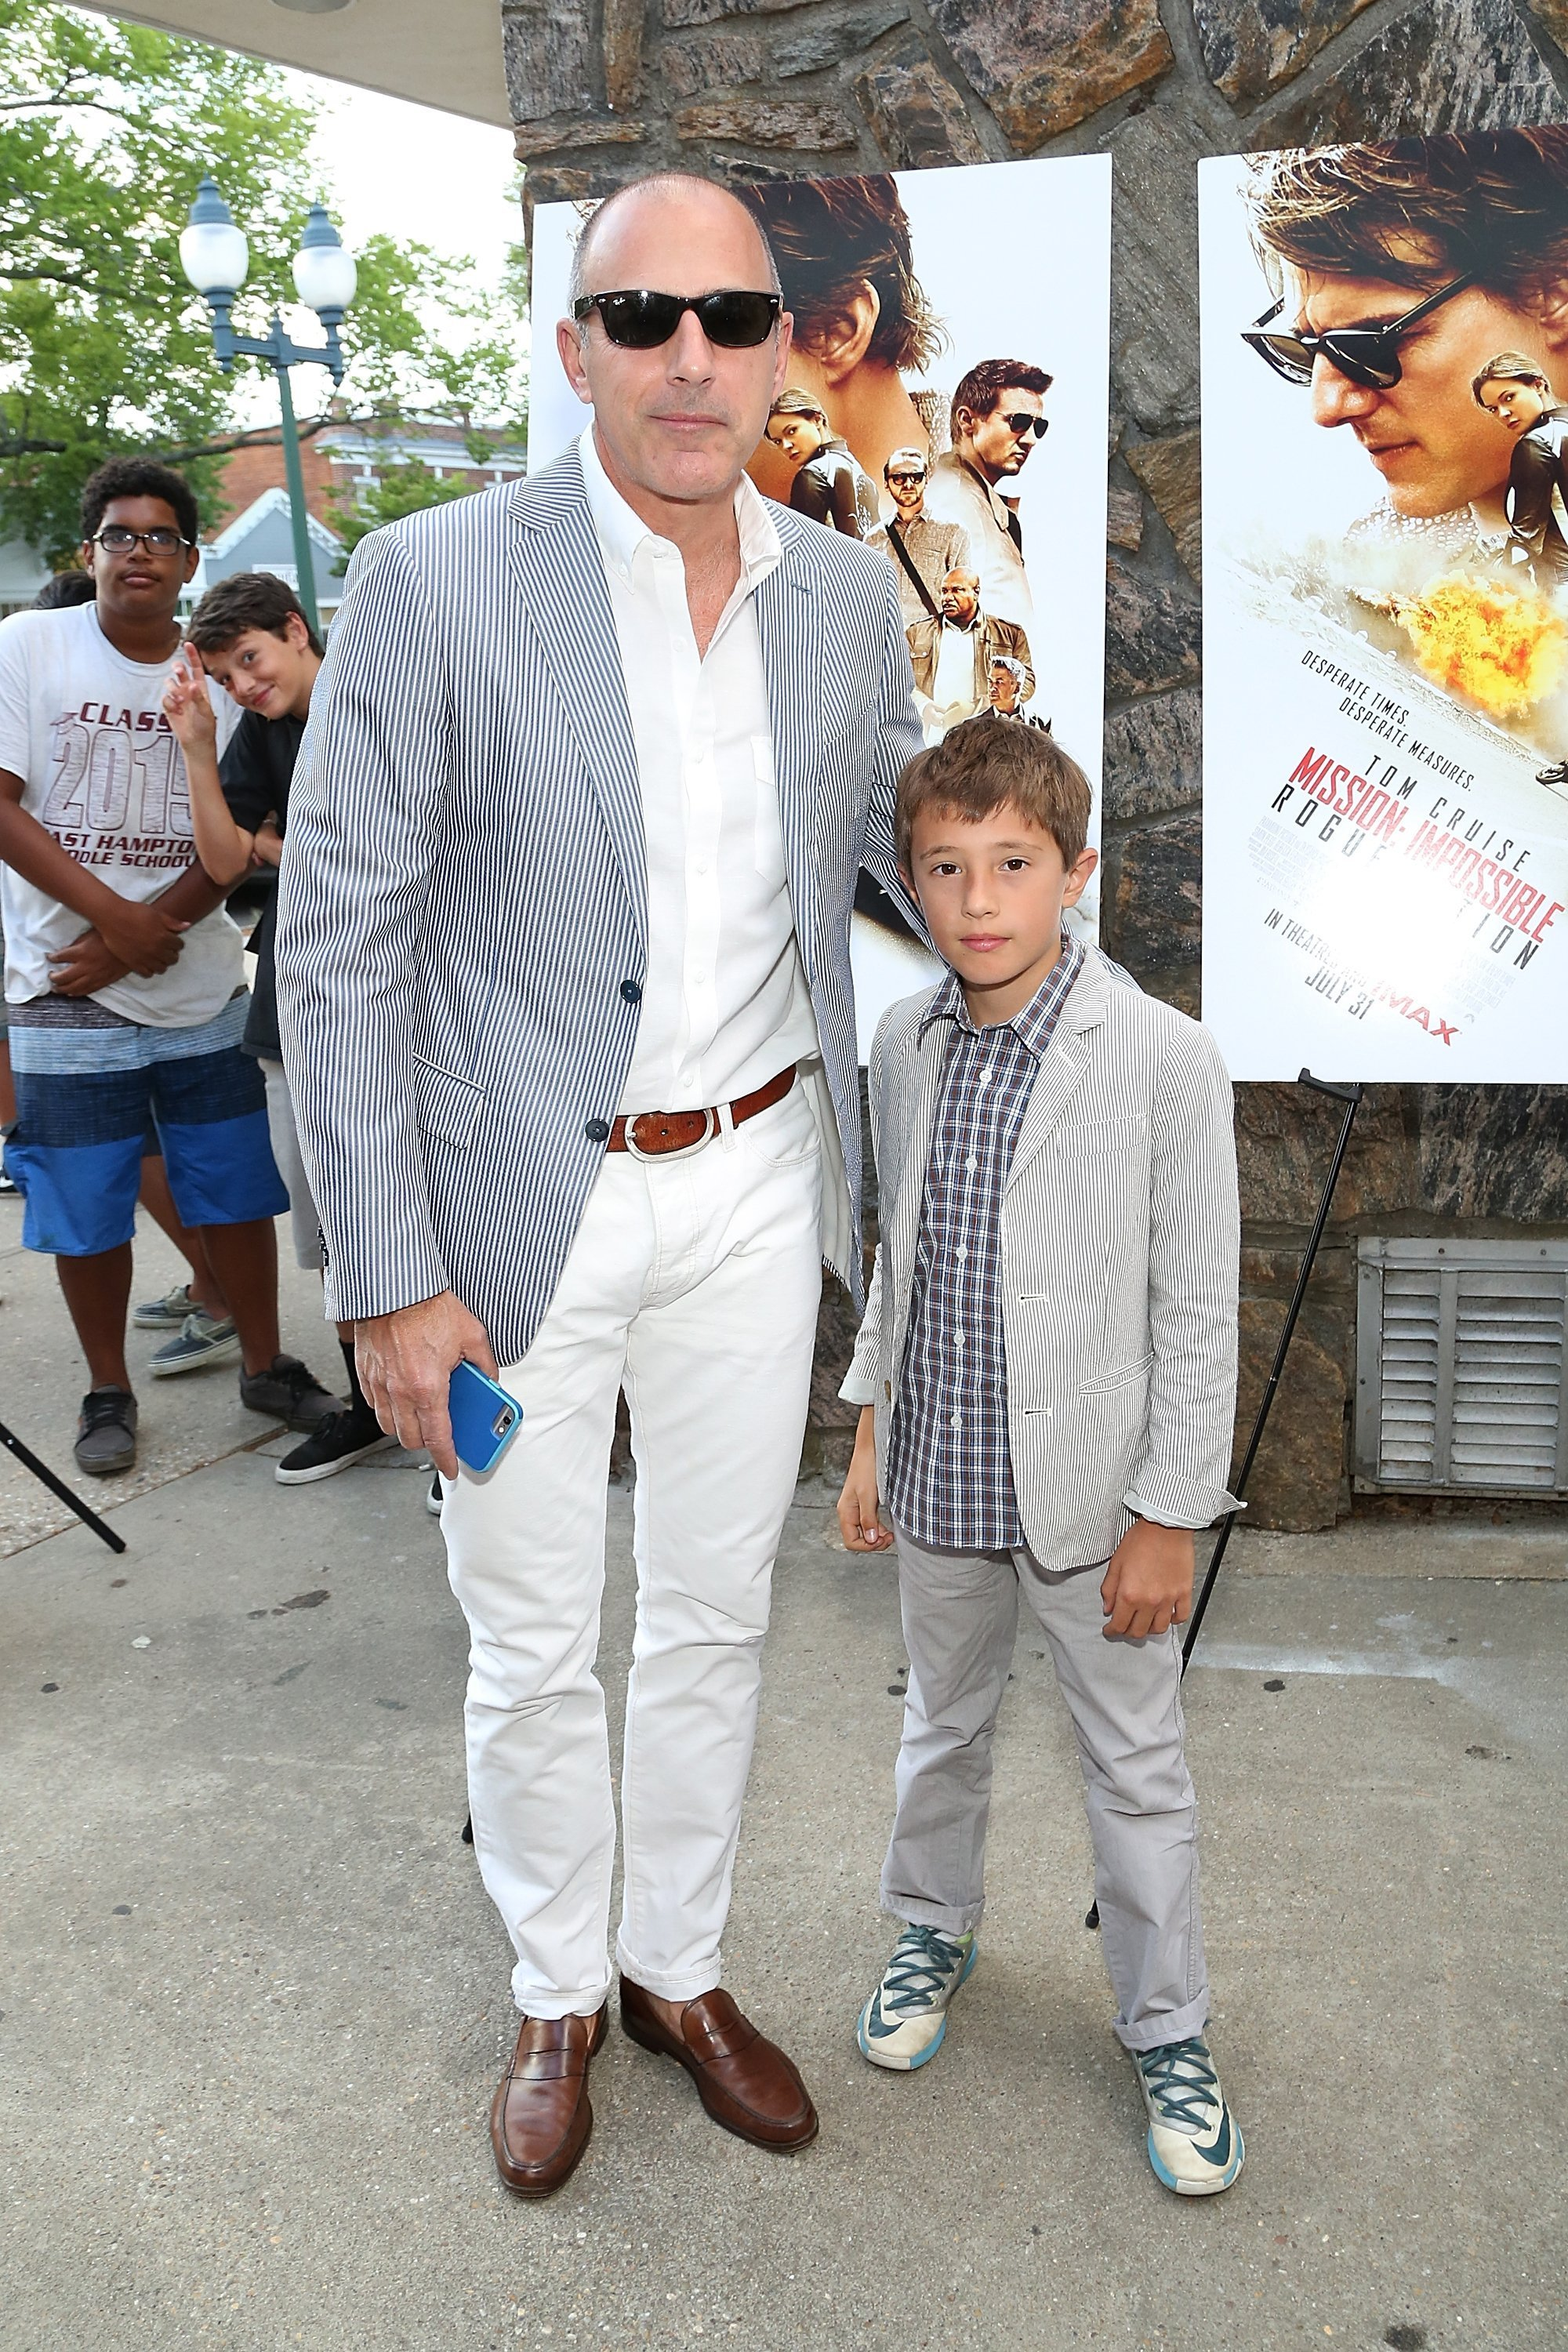 Matt Lauer and son Thijs Lauer at the Mission Impossible - Rogue Nation Special Screening on July 24, 2015 in East Hamptons   Photo: Getty Images